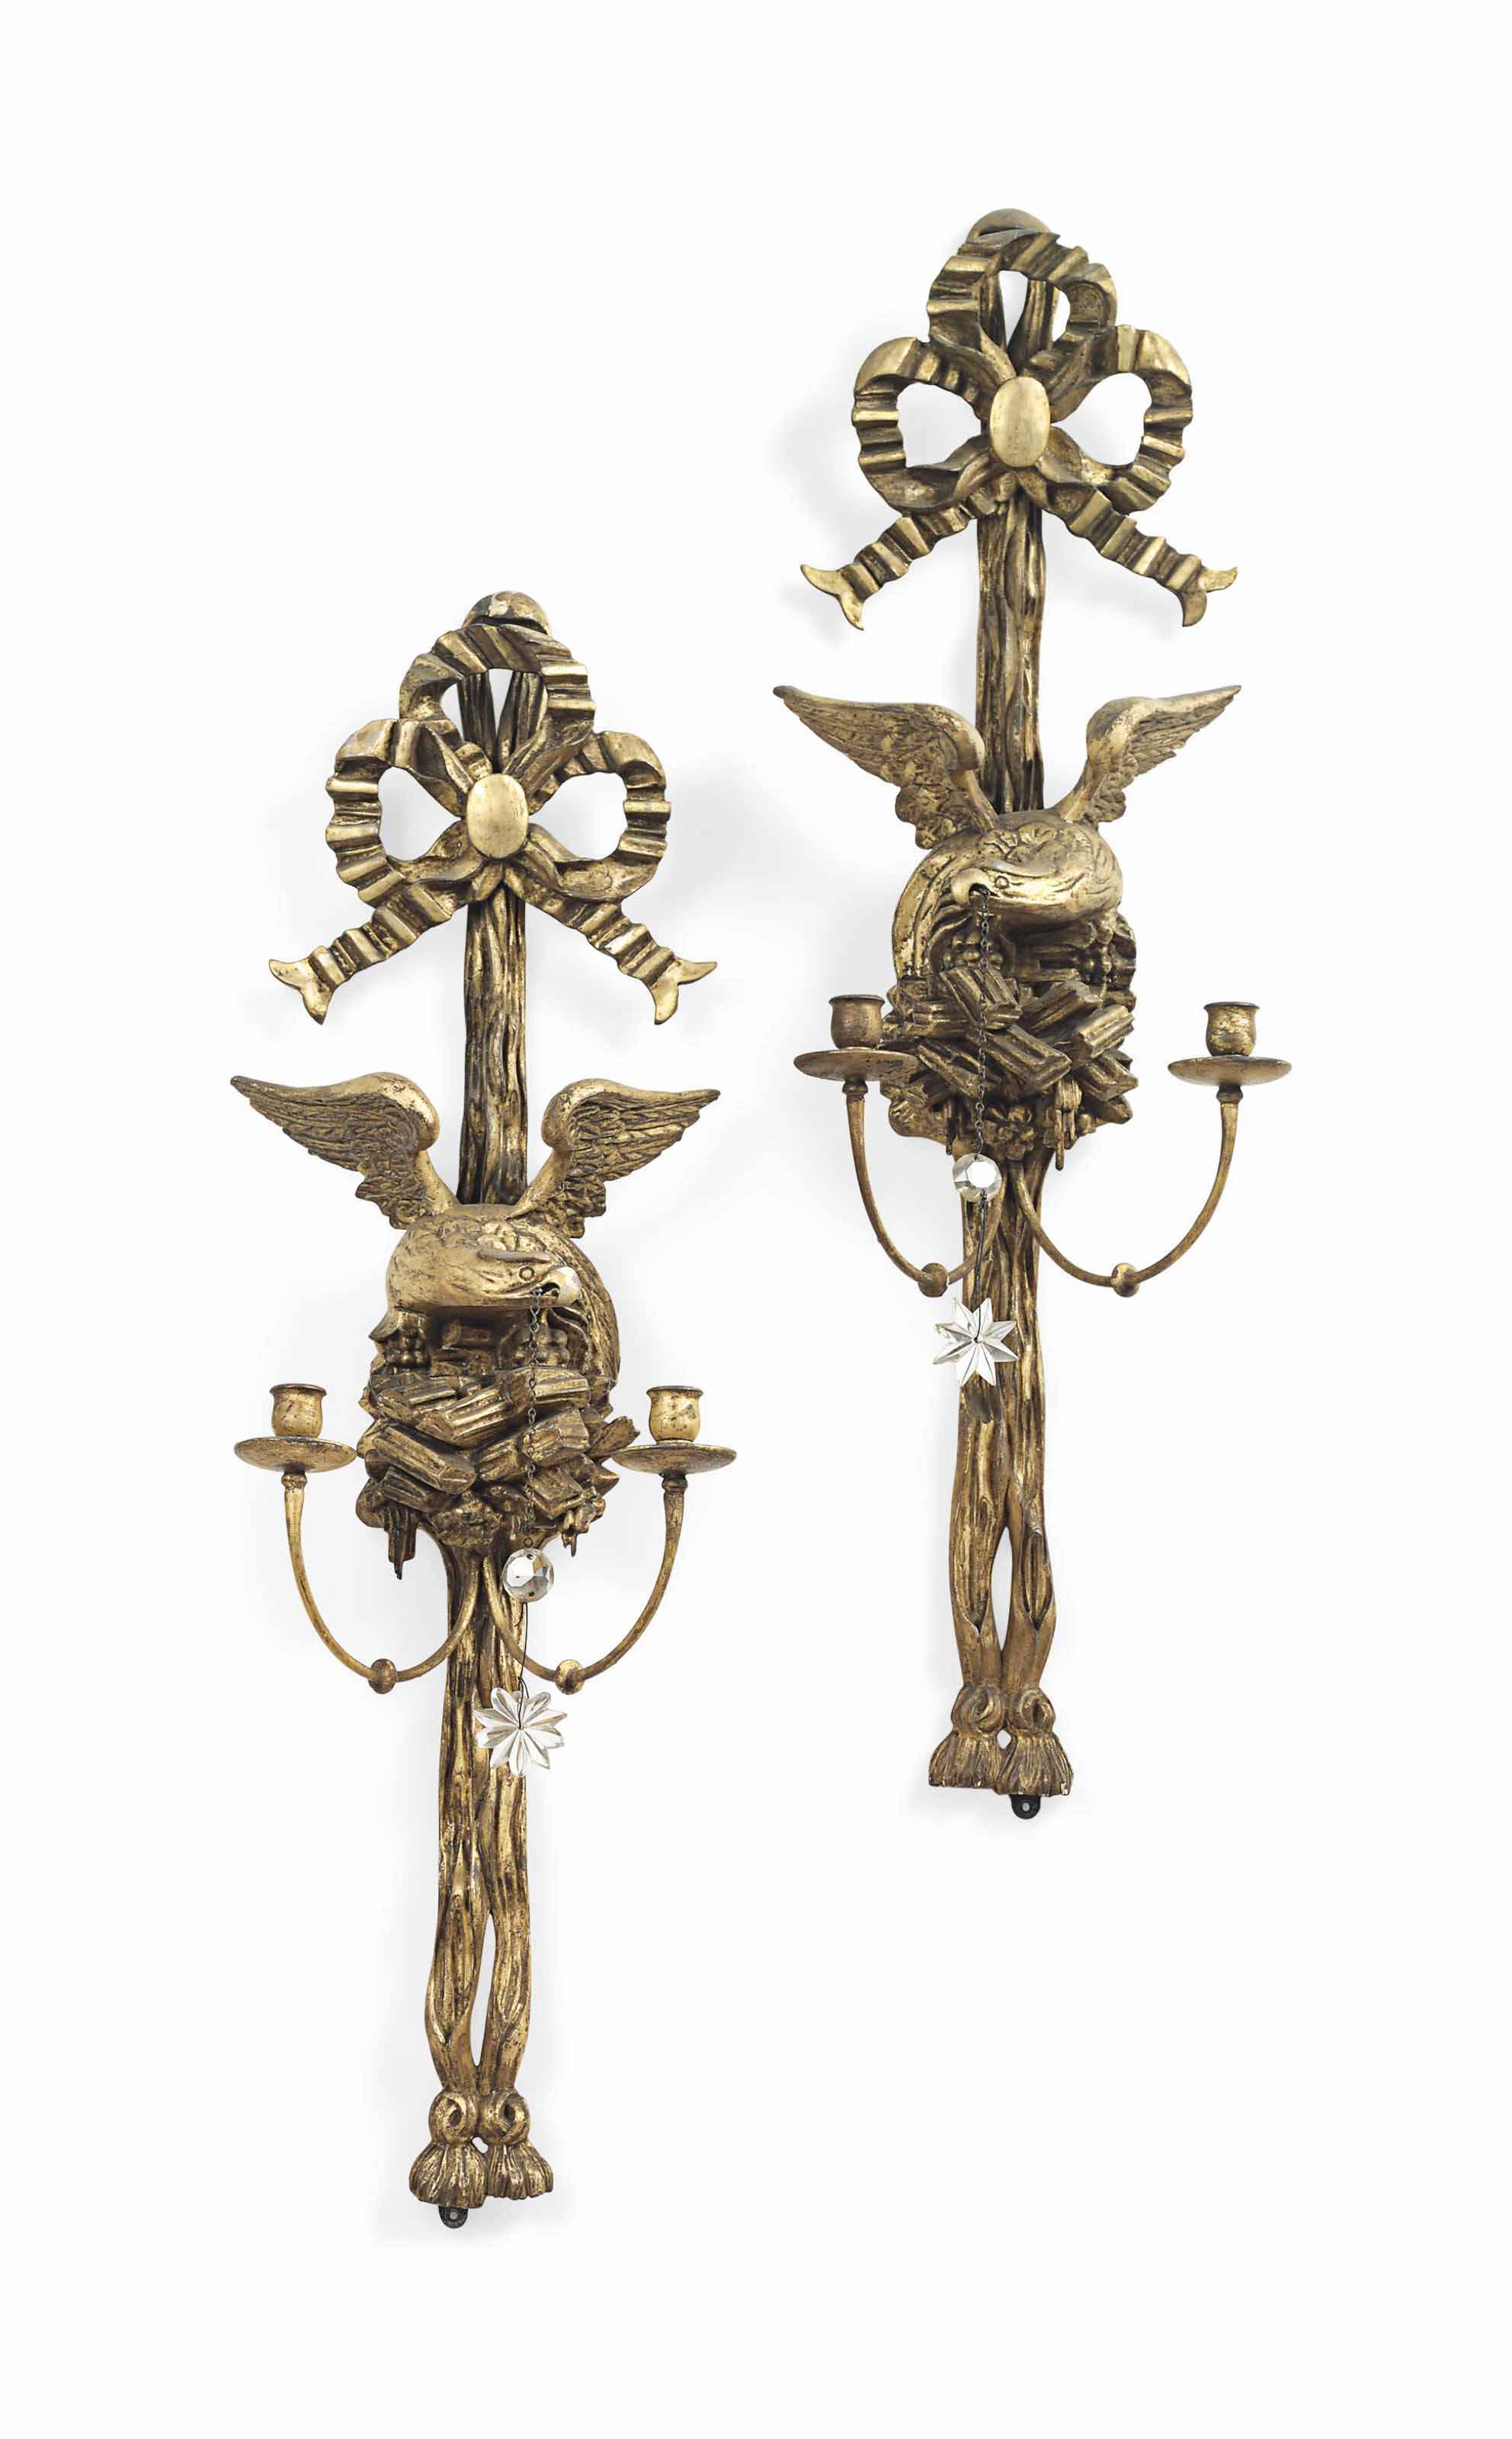 A PAIR OF REGENCY REVIVAL GILTWOOD TWO-LIGHT WALL-LIGHTS